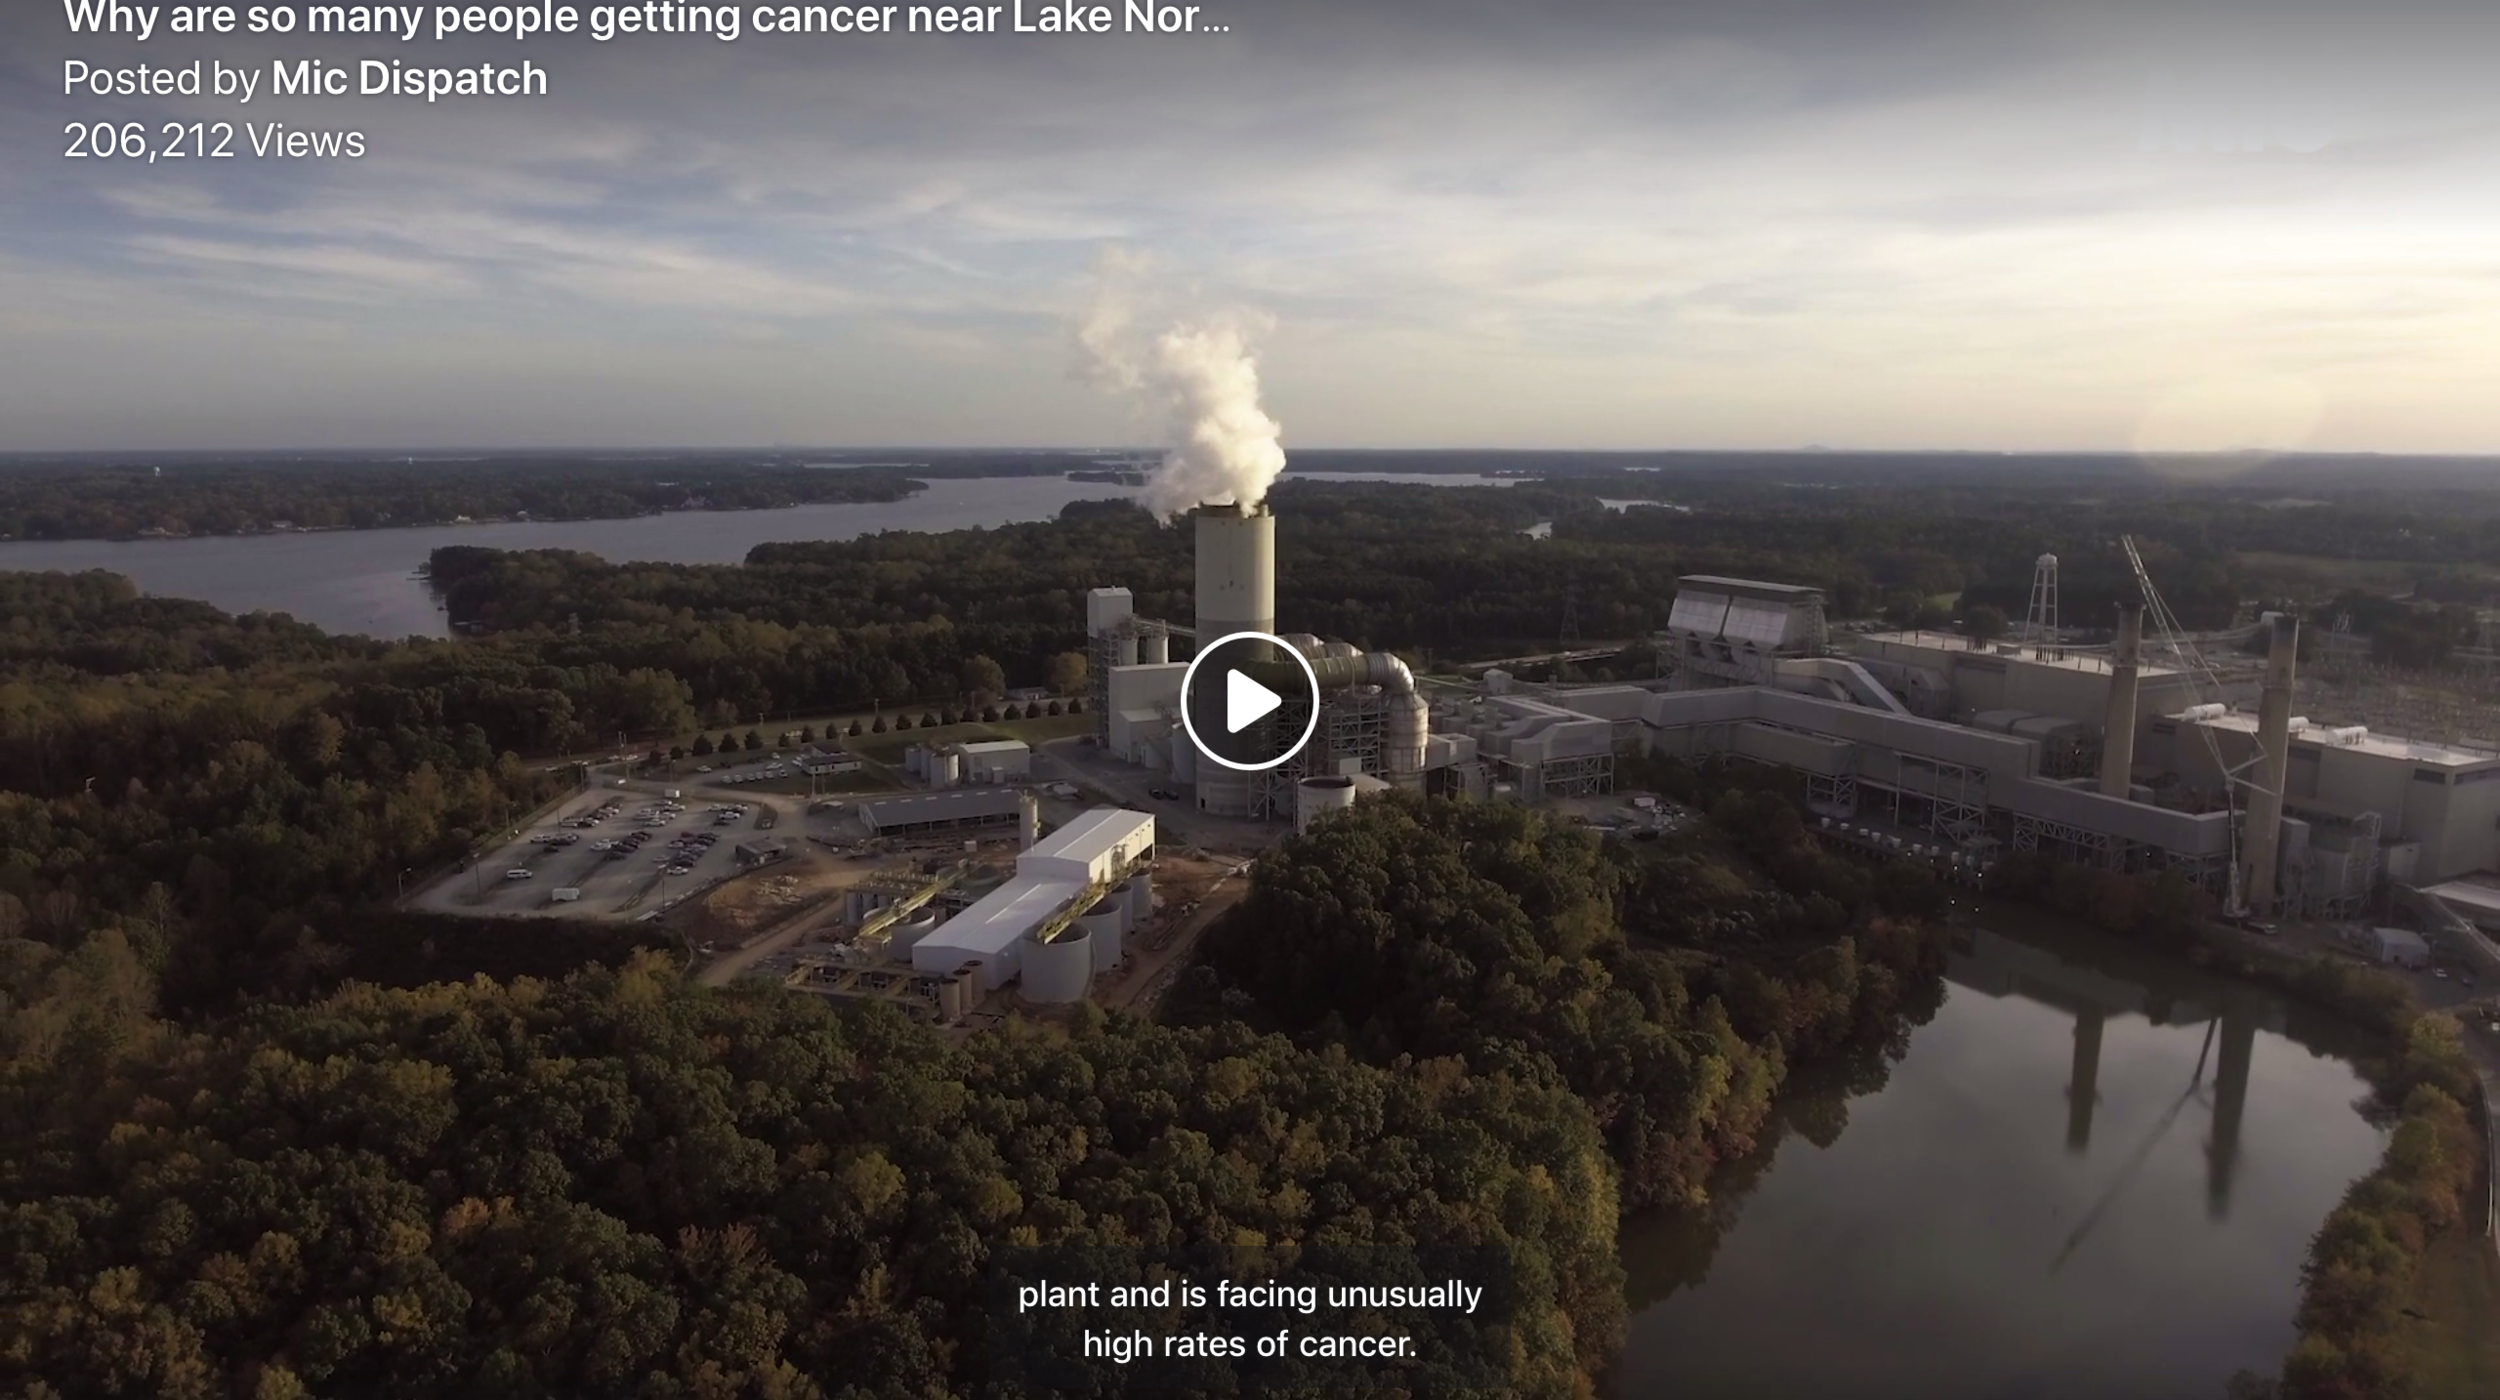 An investigation into the effects of coal ash on North Carolina communities, in the wake of recent deregulation.